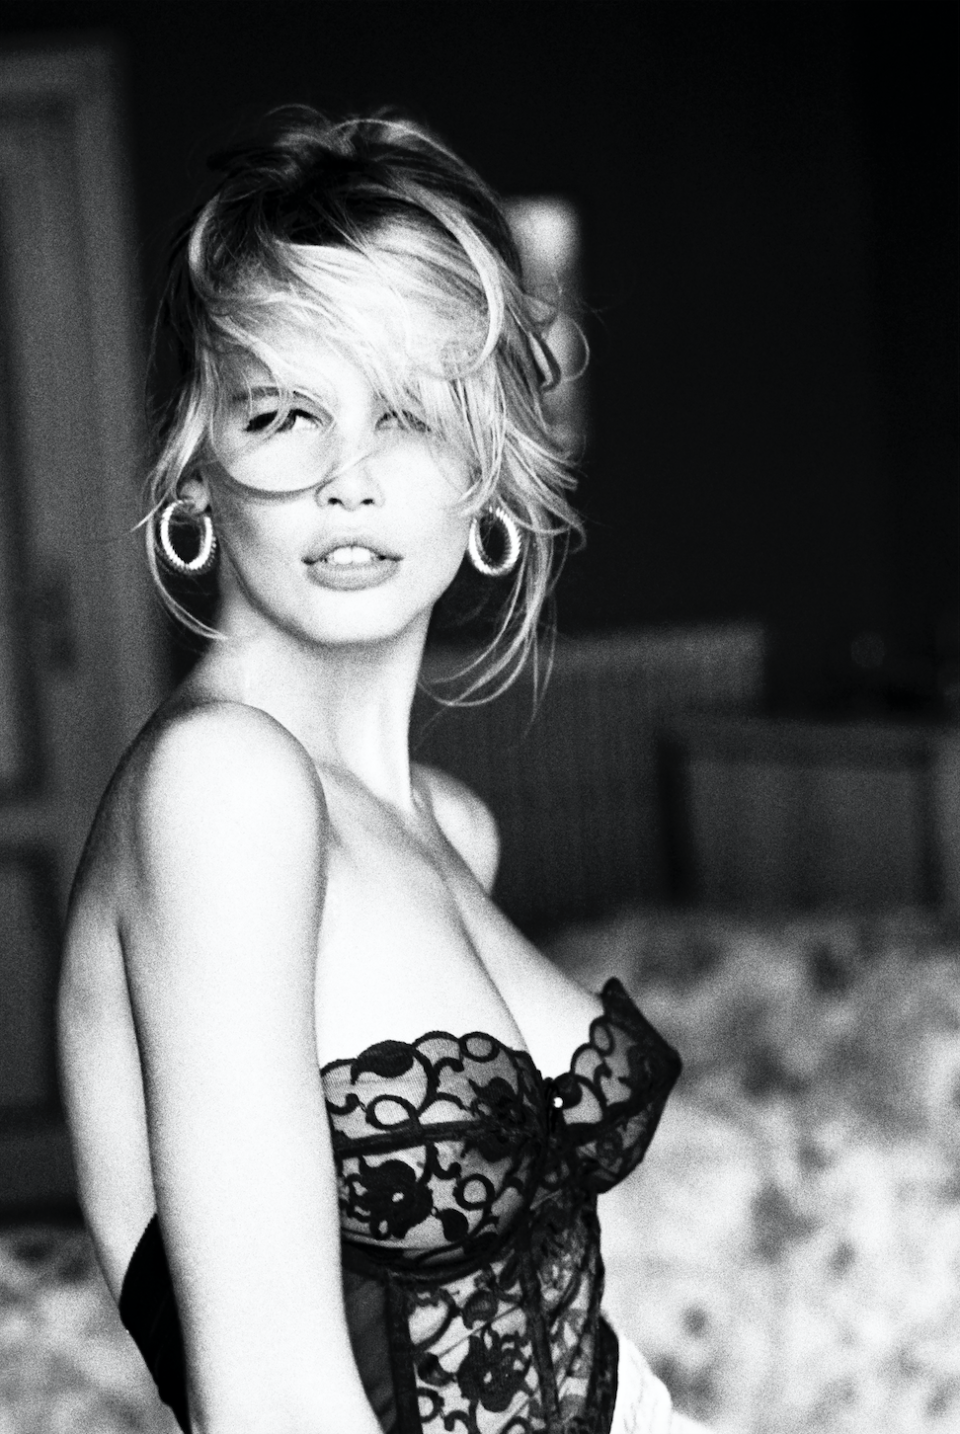 """<p>As far as supermodels go, it doesn't get more legendary than Claudia Schiffer. From sashaying down the runway as one of Versace's """"Golden Girls"""" to making a memorable cameo as Liam Neeson's love interest in <em>Love Actually</em>, the fashion icon has done—and seen—it all. It makes sense, then, why she has decided to chronicle her wealth of experiences in a new illustrated book. <em><a href=""""https://www.penguinrandomhouse.com/books/676698/captivate-by-claudia-schiffer/"""" rel=""""nofollow noopener"""" target=""""_blank"""" data-ylk=""""slk:Captivate! Fashion Photography from the '90s"""" class=""""link rapid-noclick-resp"""">Captivate! Fashion Photography from the '90s</a></em>, due out in November, will accompany the first-ever exhibition curated by Schiffer, featuring stunning (and unseen) photography by Arthur Elgort, Ellen von Unwerth, Herb Ritts and more, largely culled from the model's private archive. Here, exclusively for ELLE.com, Schiffer shares the story behind some of her favorite images.</p>"""